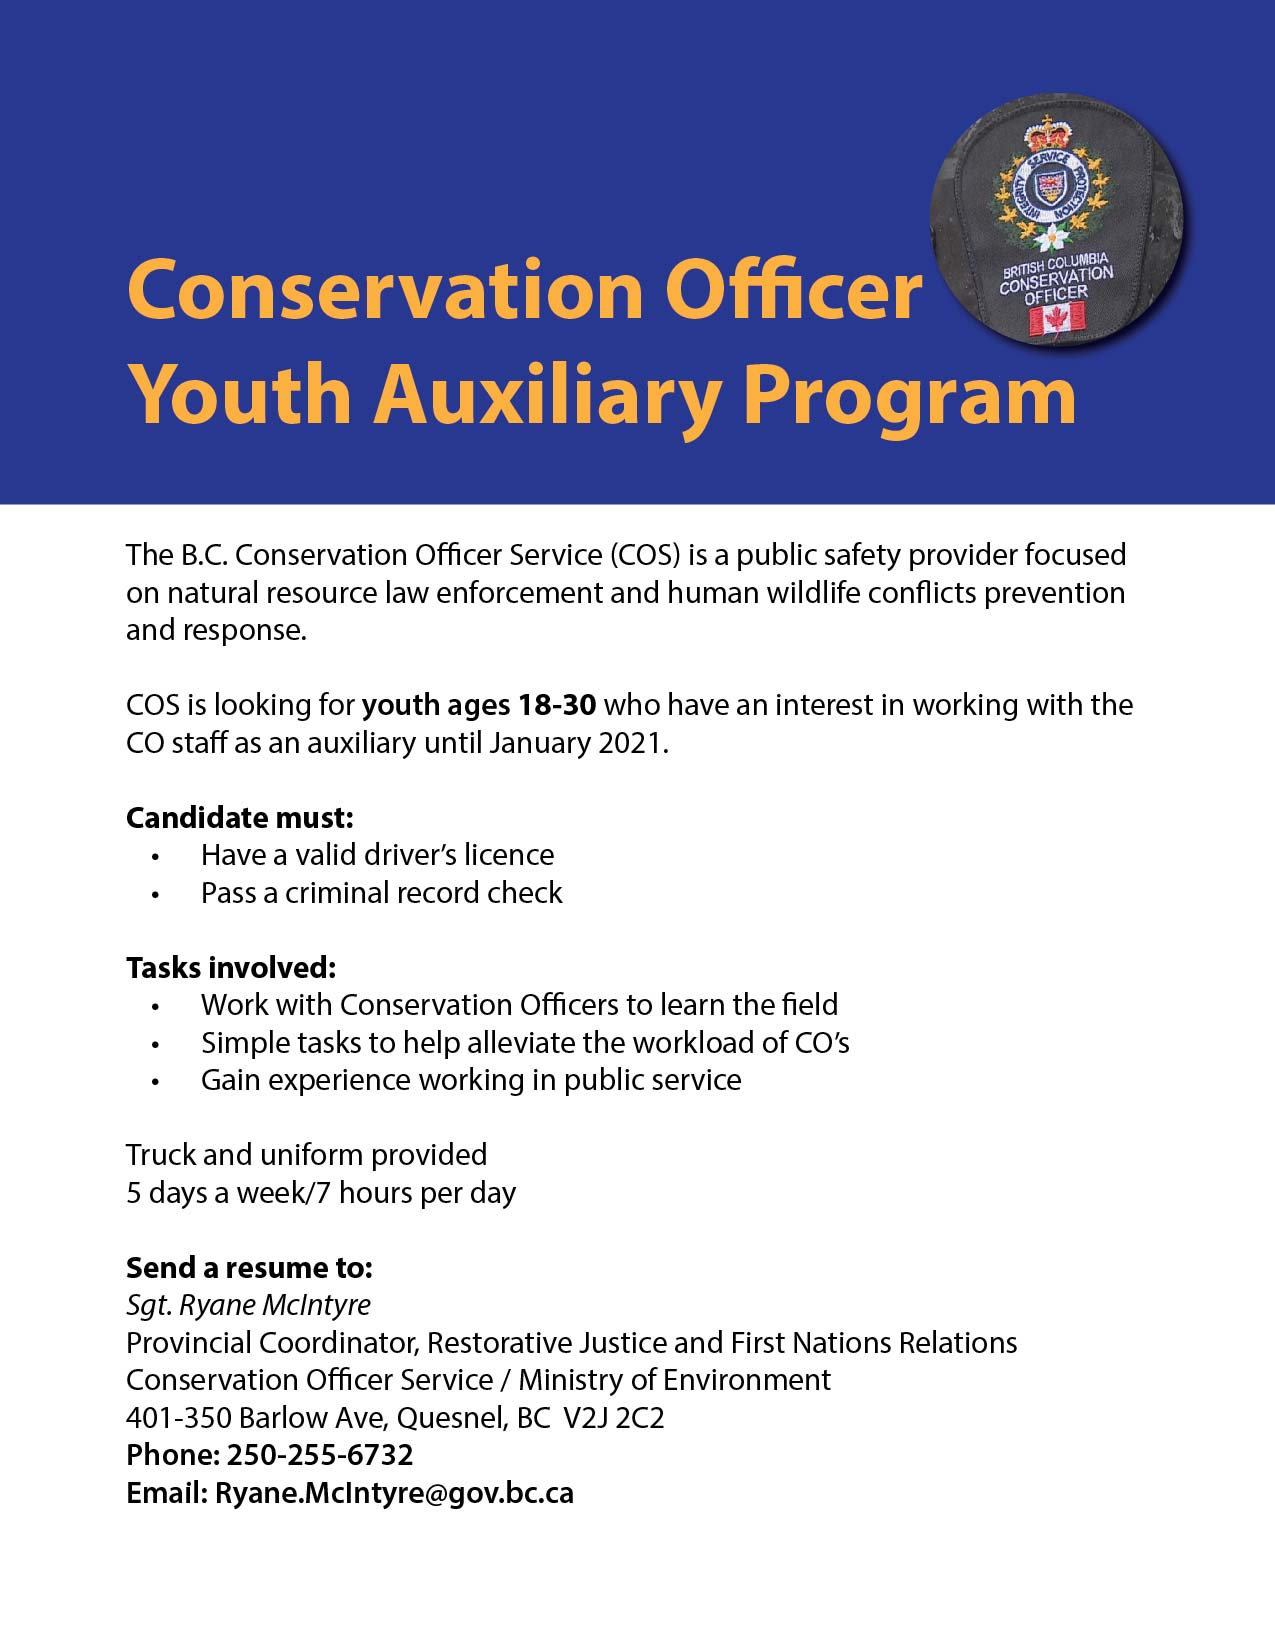 Conservation Officer Youth Auxiliary Program